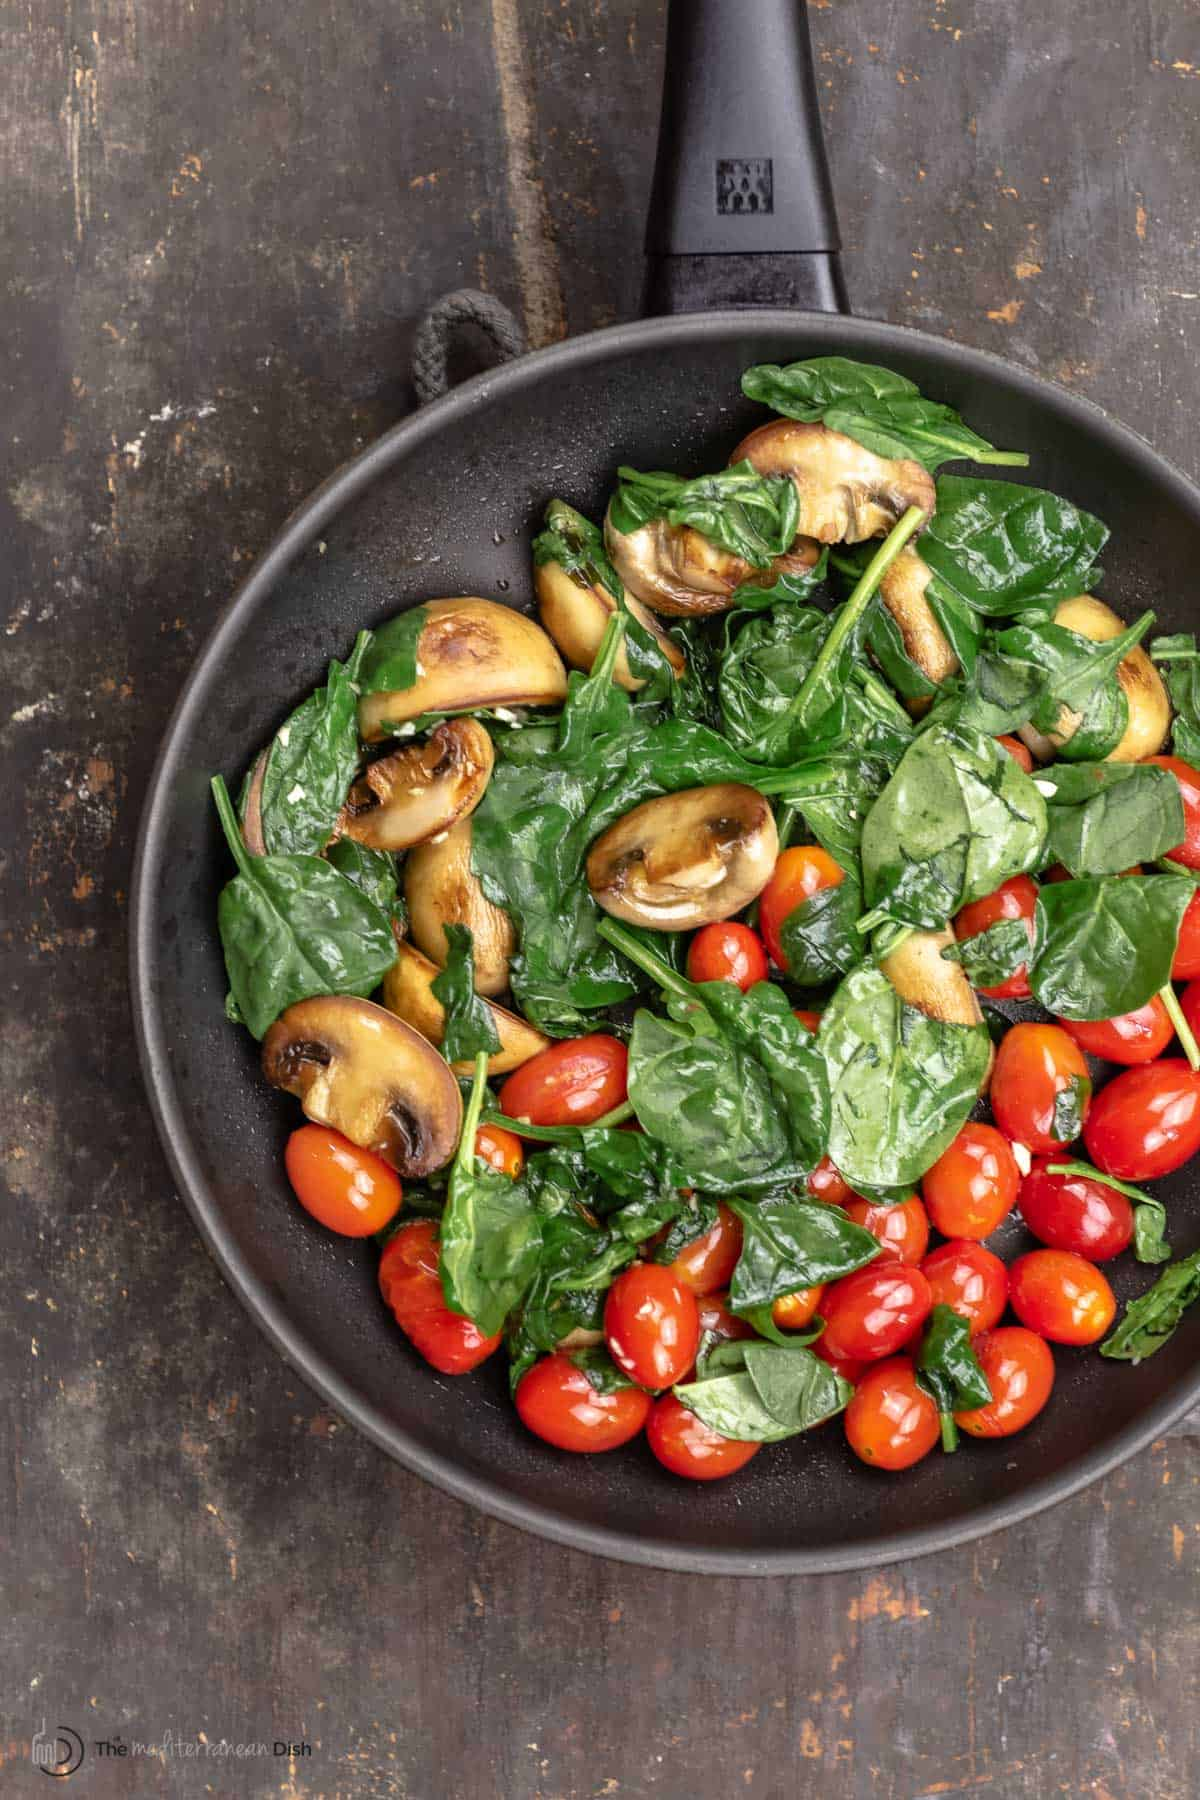 Mushrooms, spinach and cherry tomatoes in a skillet